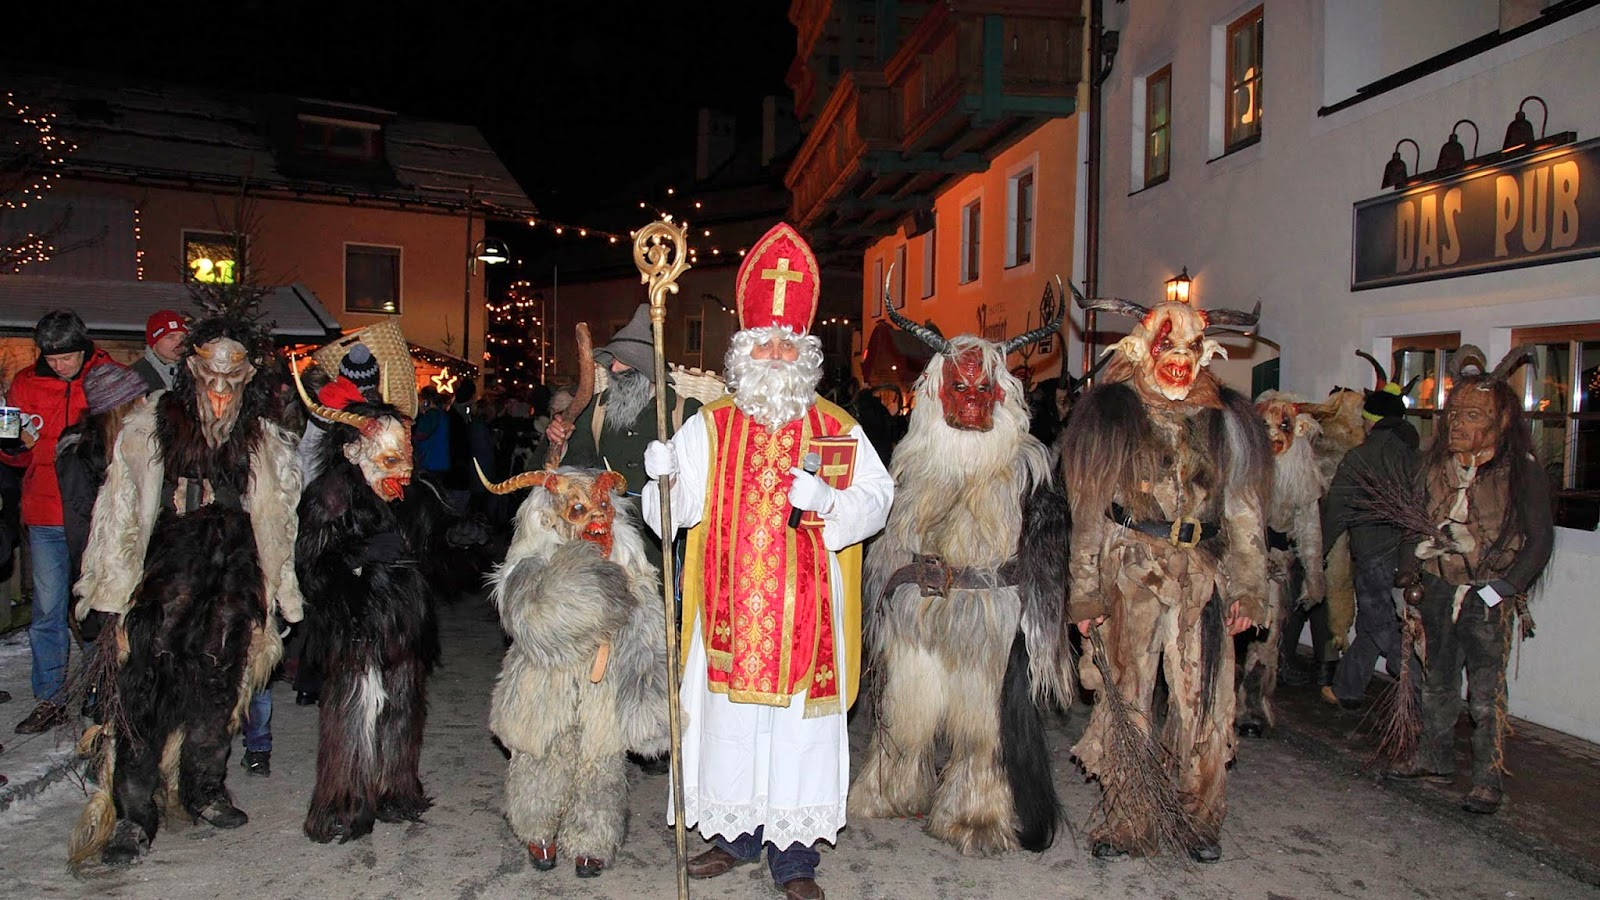 Krampus parades can be found in areas!  May be a bit scary for the little ones.